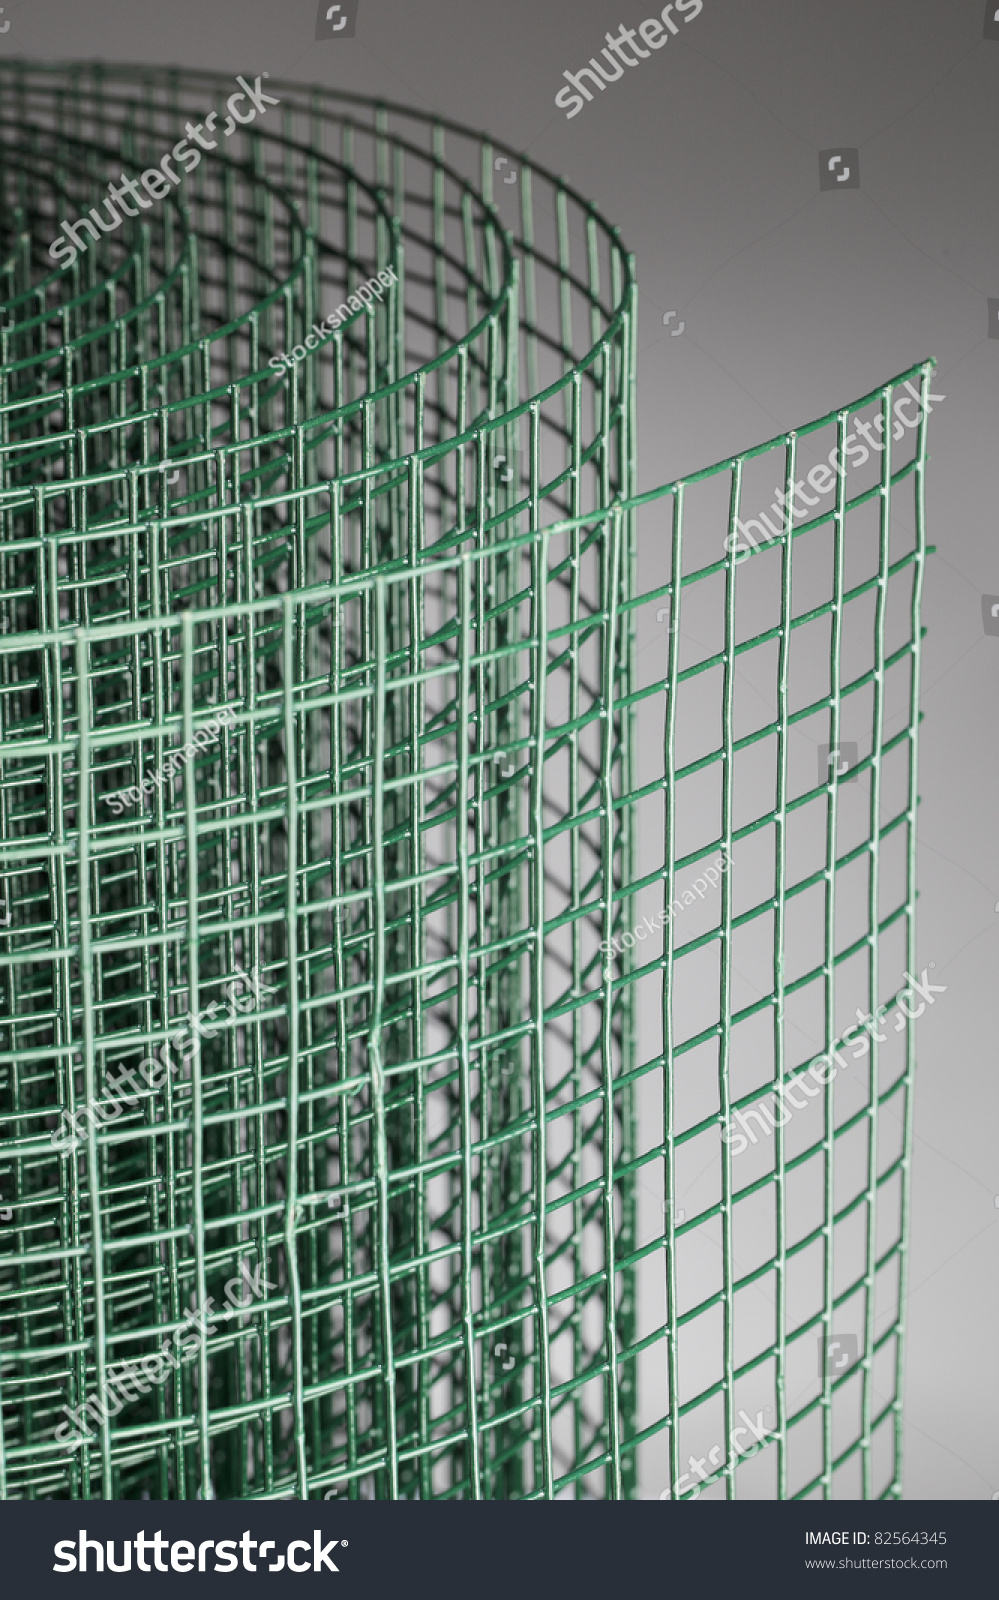 Coated green metallic wire mesh used in gardening by